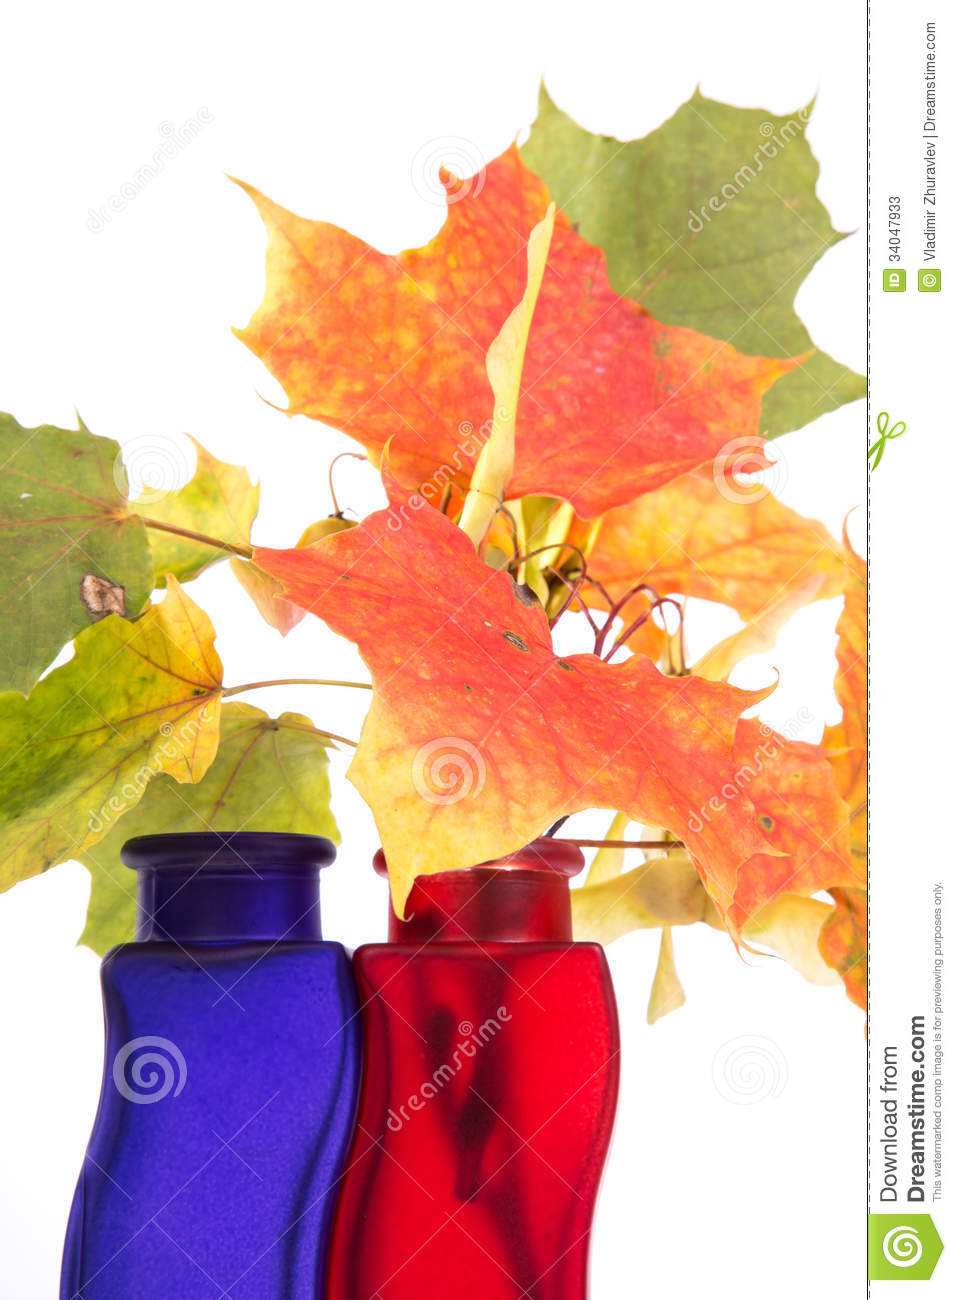 bouquet des feuilles d 39 automne dans le vase color lumineux photos stock image 34047933. Black Bedroom Furniture Sets. Home Design Ideas